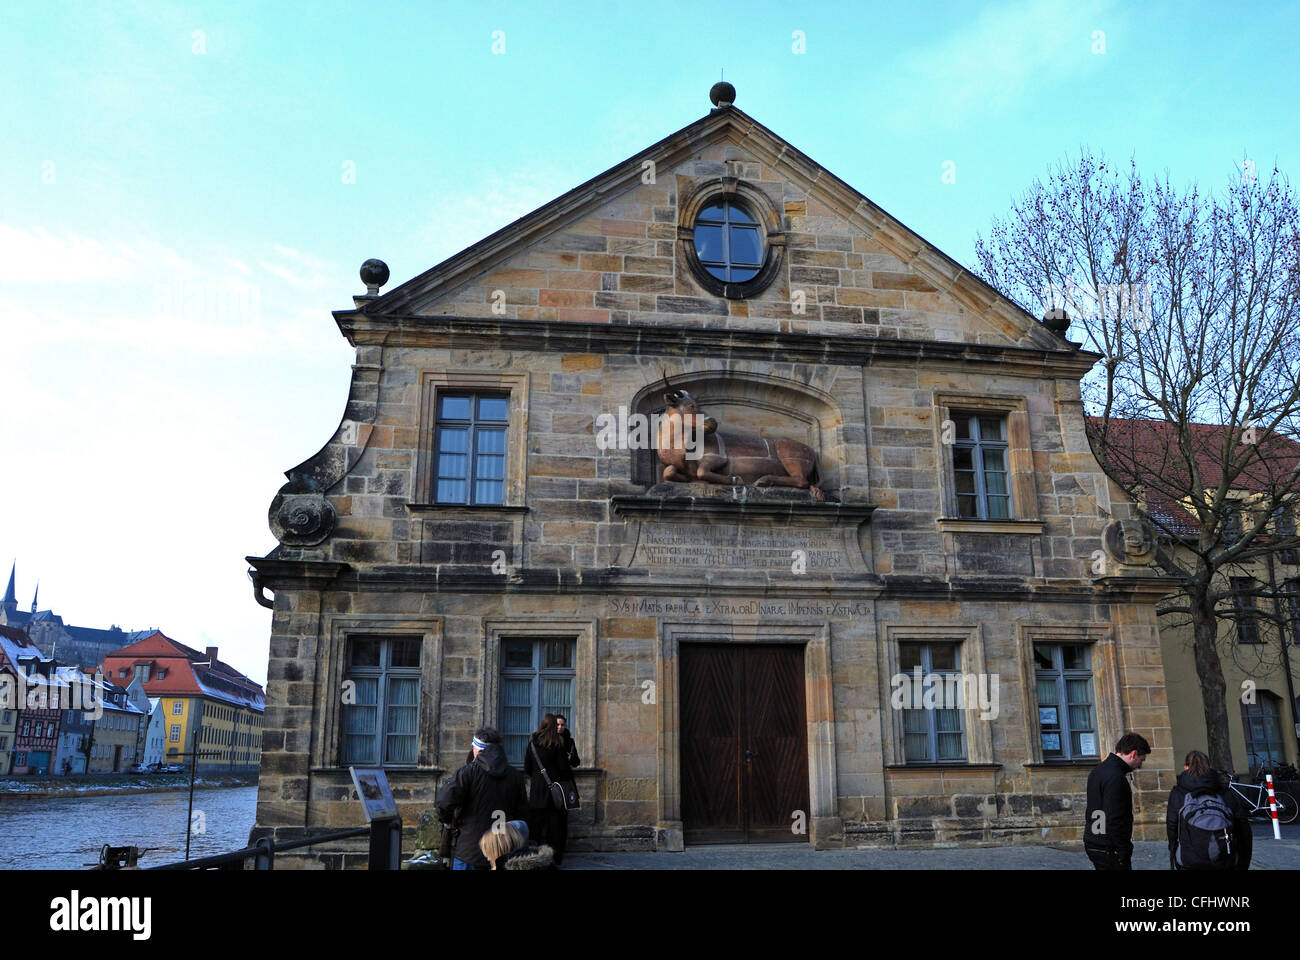 Slaughter house (Abattoir), Bamberg, Bavaria, Germany, Europe. - Stock Image